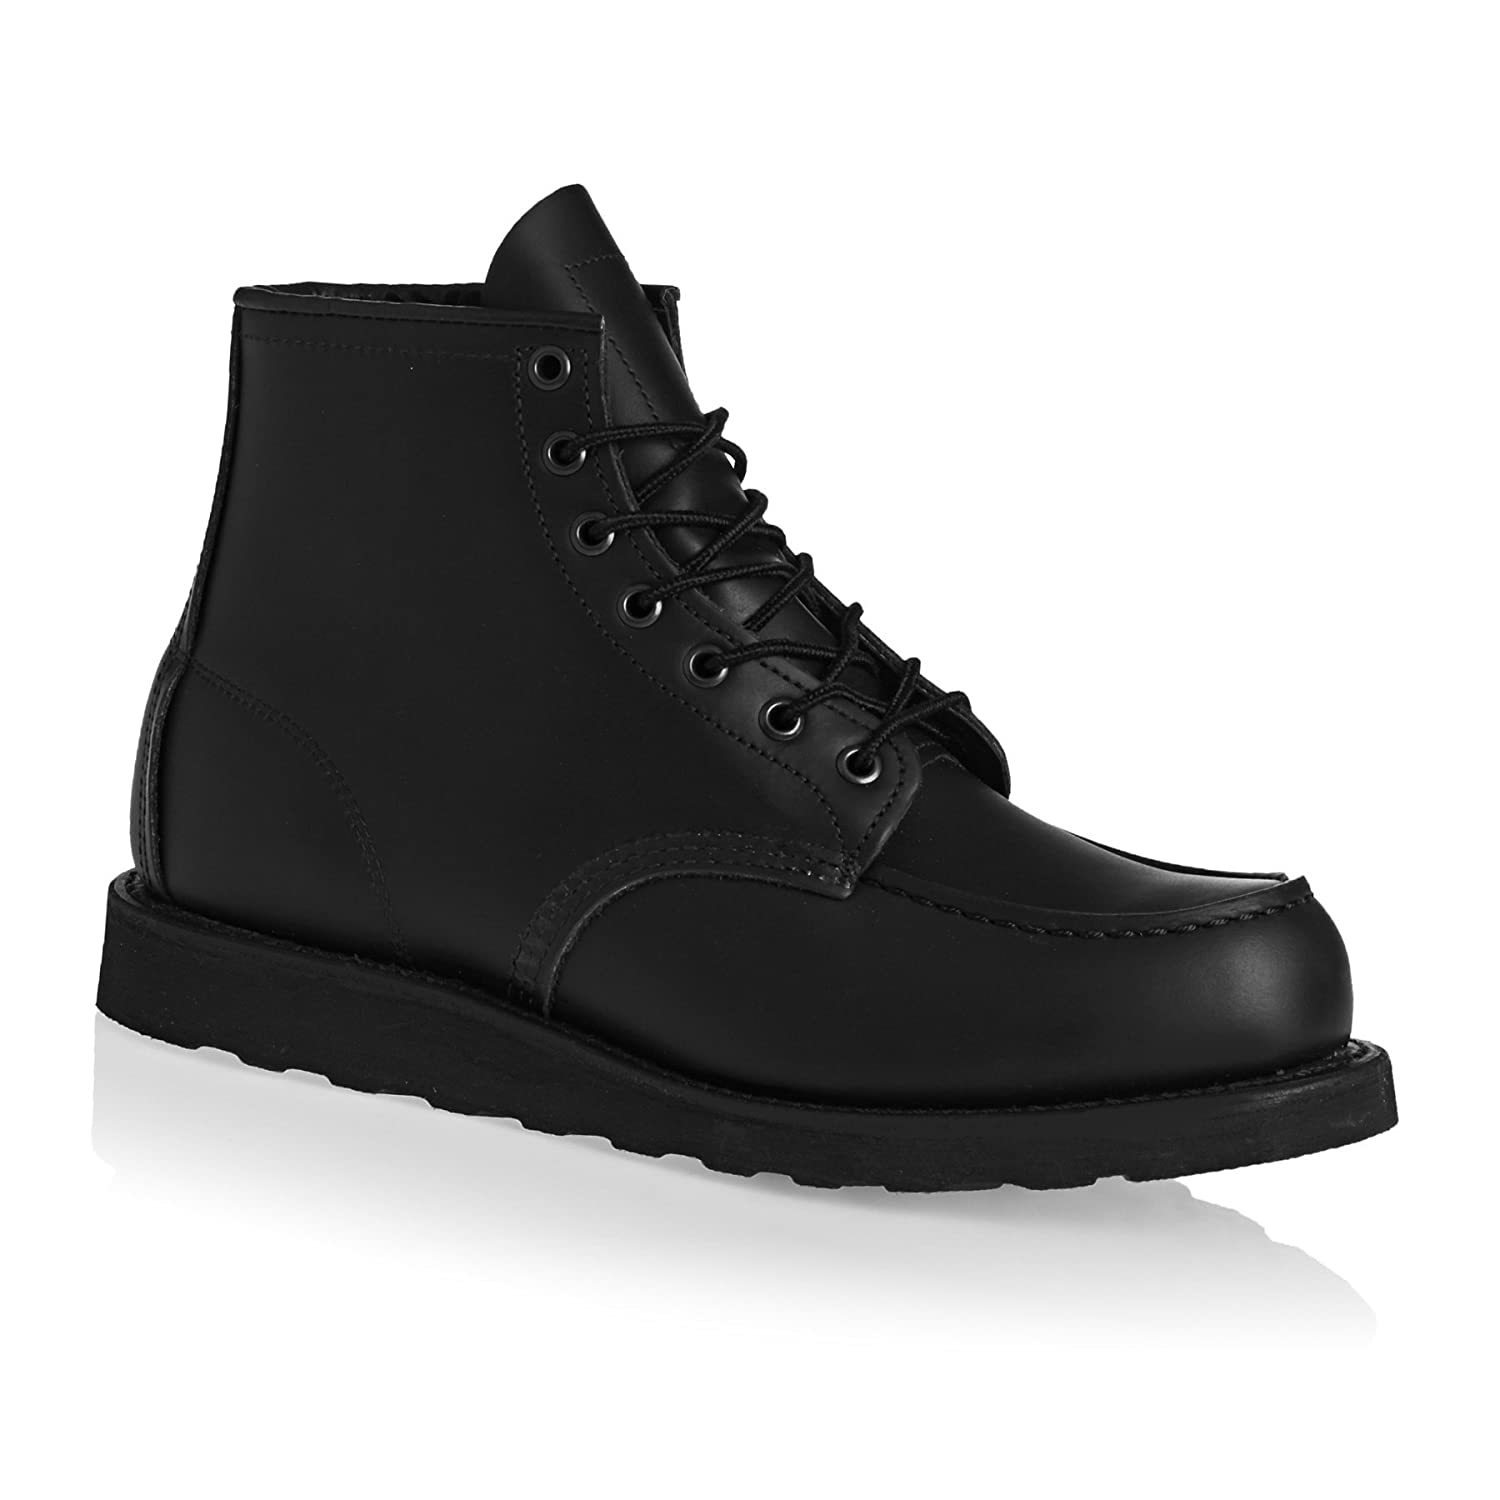 Red Wing Mens 6-Inch Moc 8137 Leather Boots: Amazon.es: Zapatos y complementos